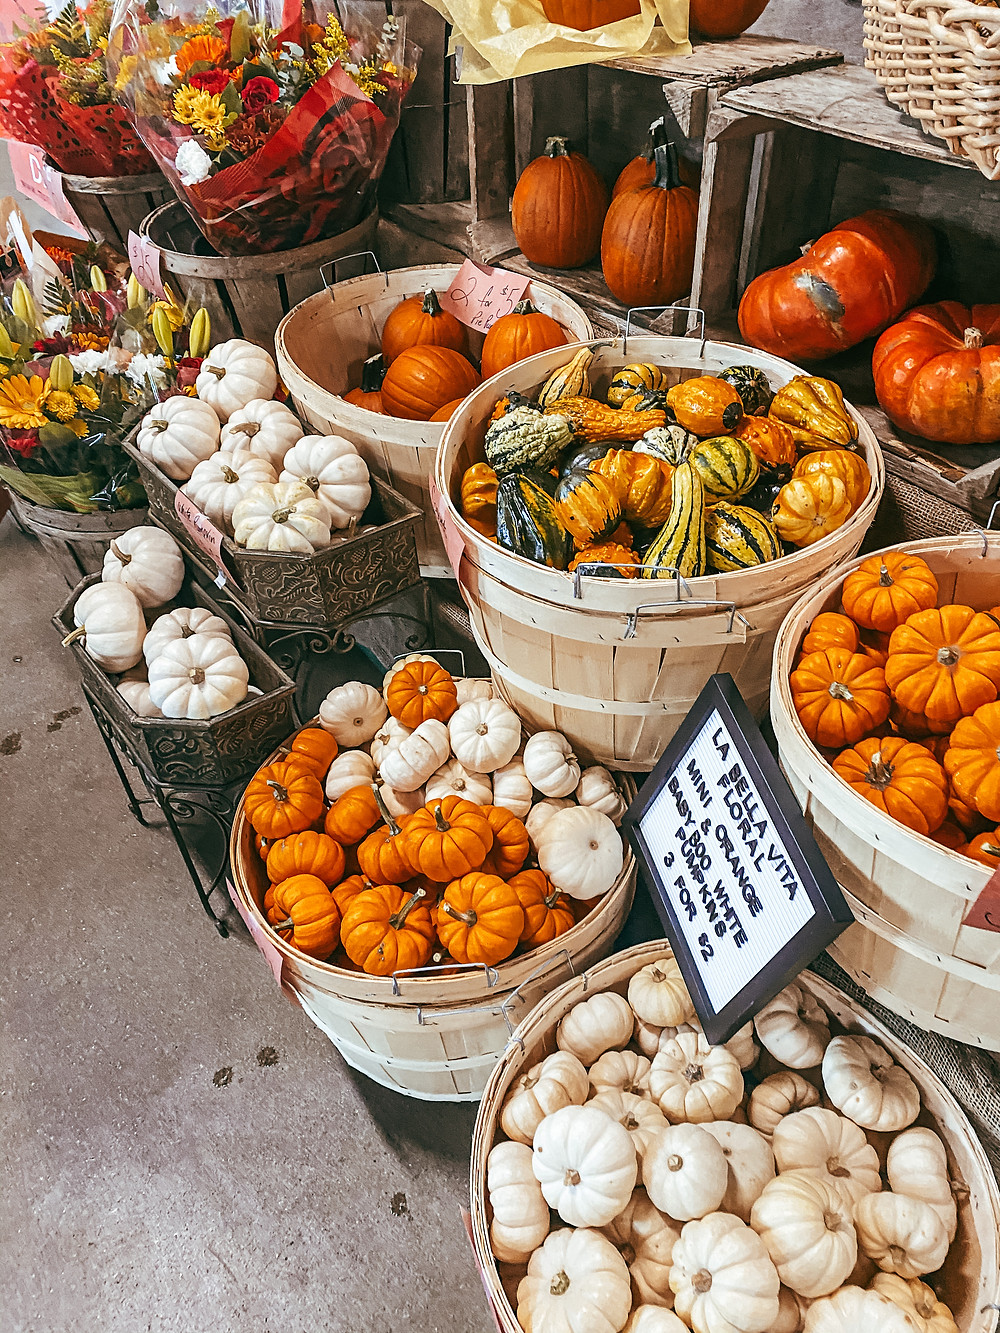 Baskets filled with pumpkins and gourds at a market stall